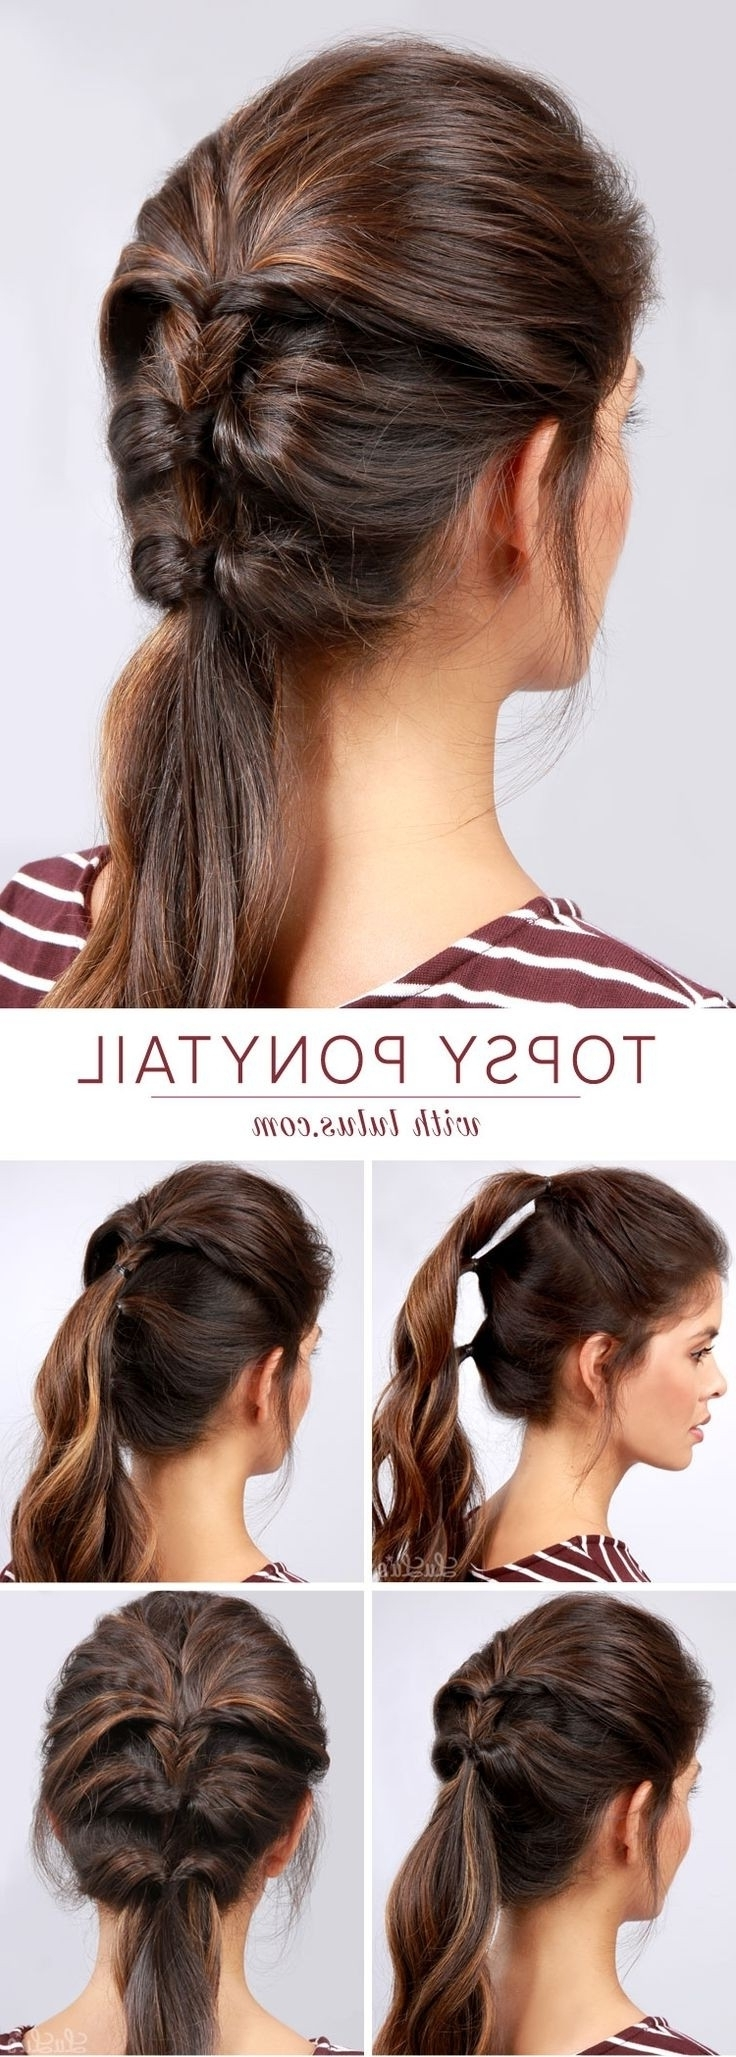 Most Popular Curly Pony Hairstyles For Ultra Long Hair Throughout 20 Ponytail Hairstyles: Discover Latest Ponytail Ideas Now (View 2 of 20)